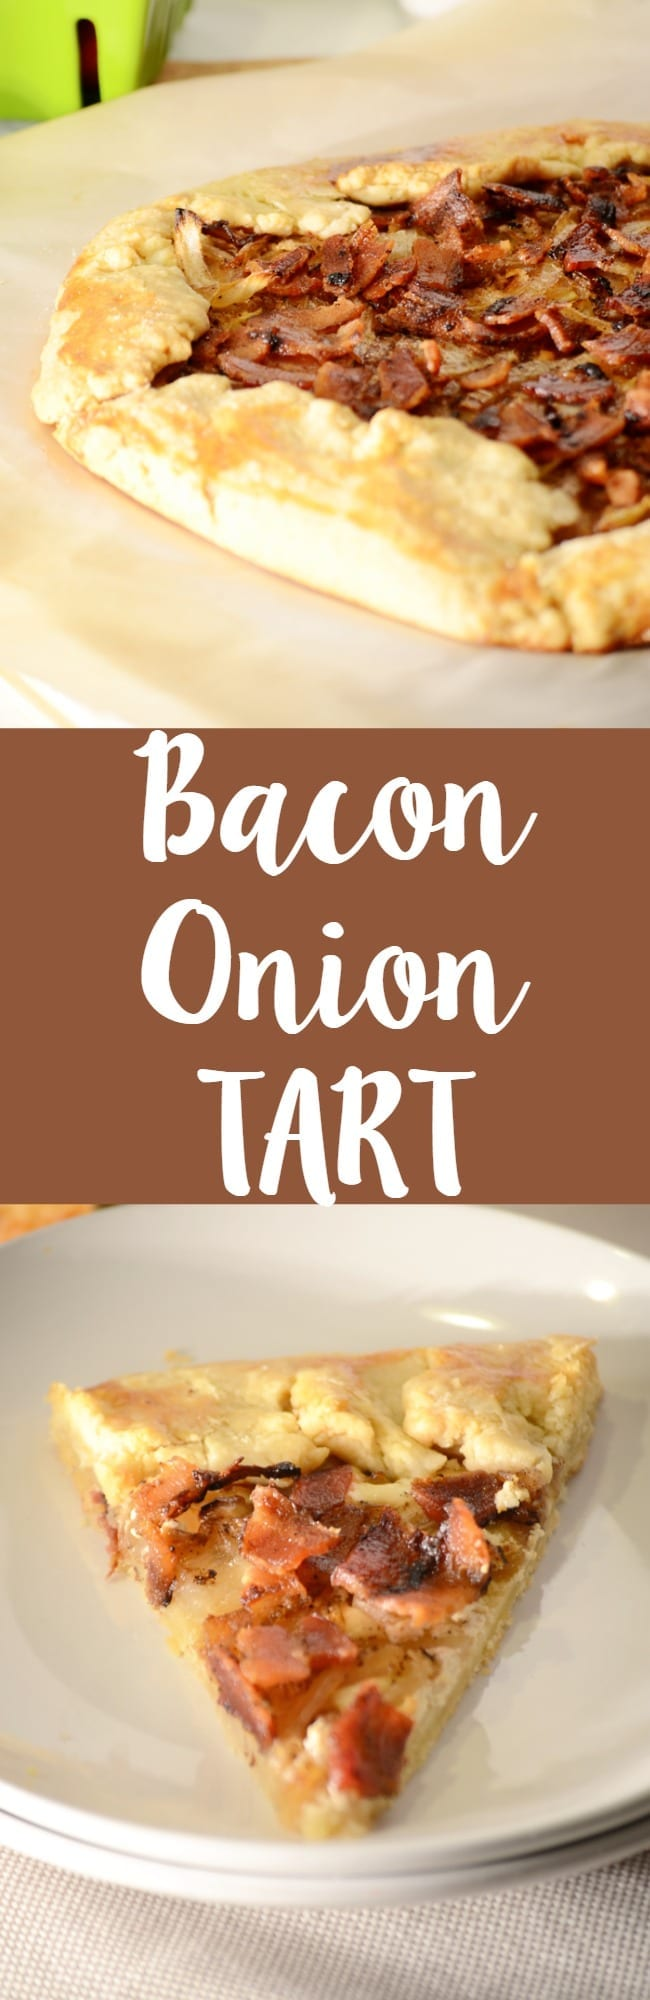 ... tart crust is packed full of crispy bacon and caramelized onion